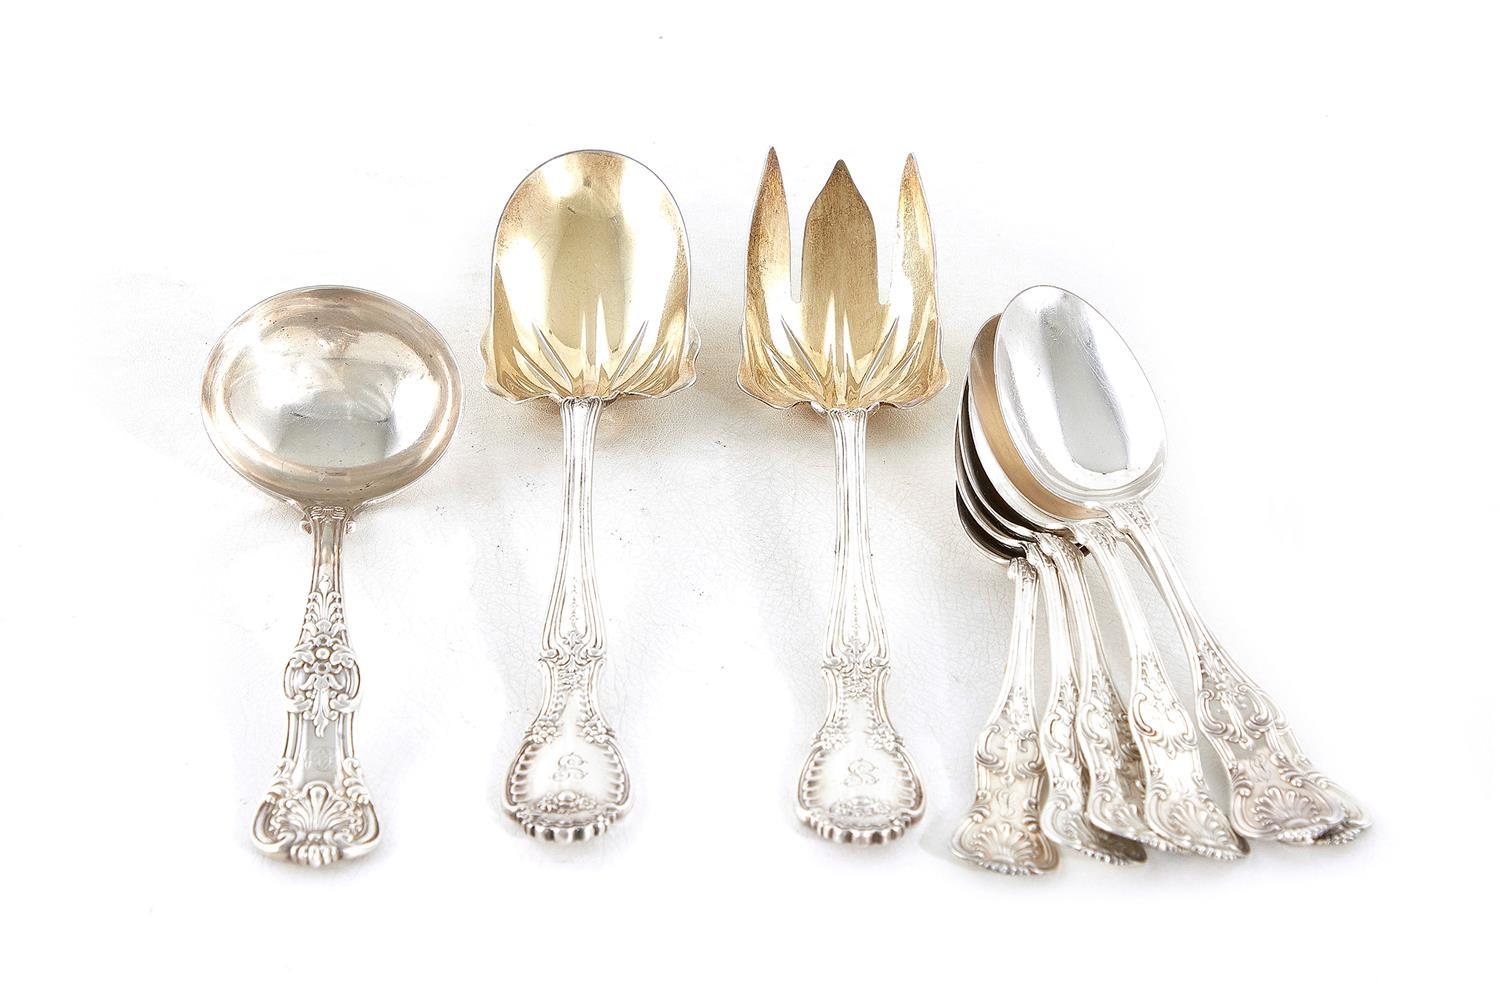 Tiffany & Co silver serving pieces and spoons (9pcs)